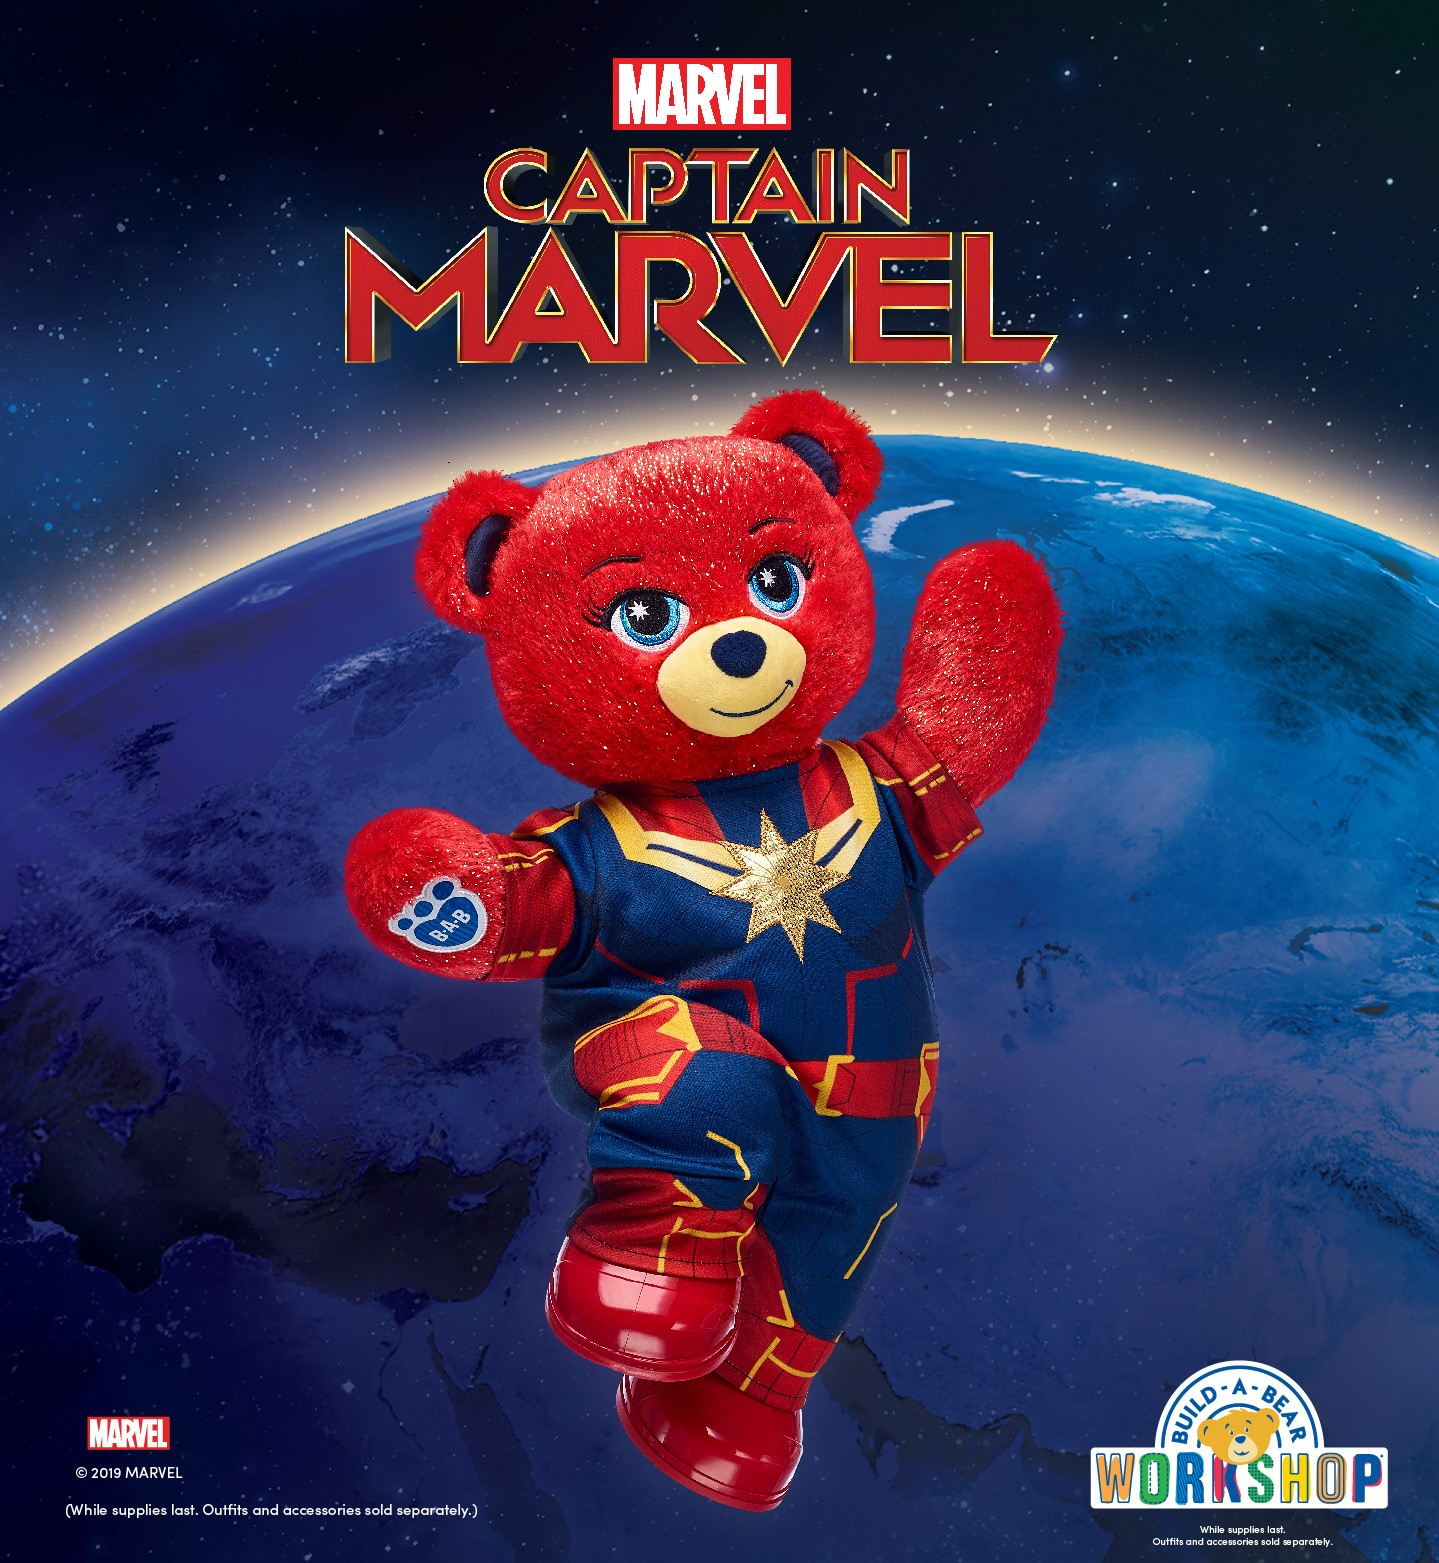 Marvel Captain Marvel, teddy bear dressed as captain marvel. Build A Bear Workshop Logo. While Supplies last. Outfits and accessories sold separately. Marvel logo